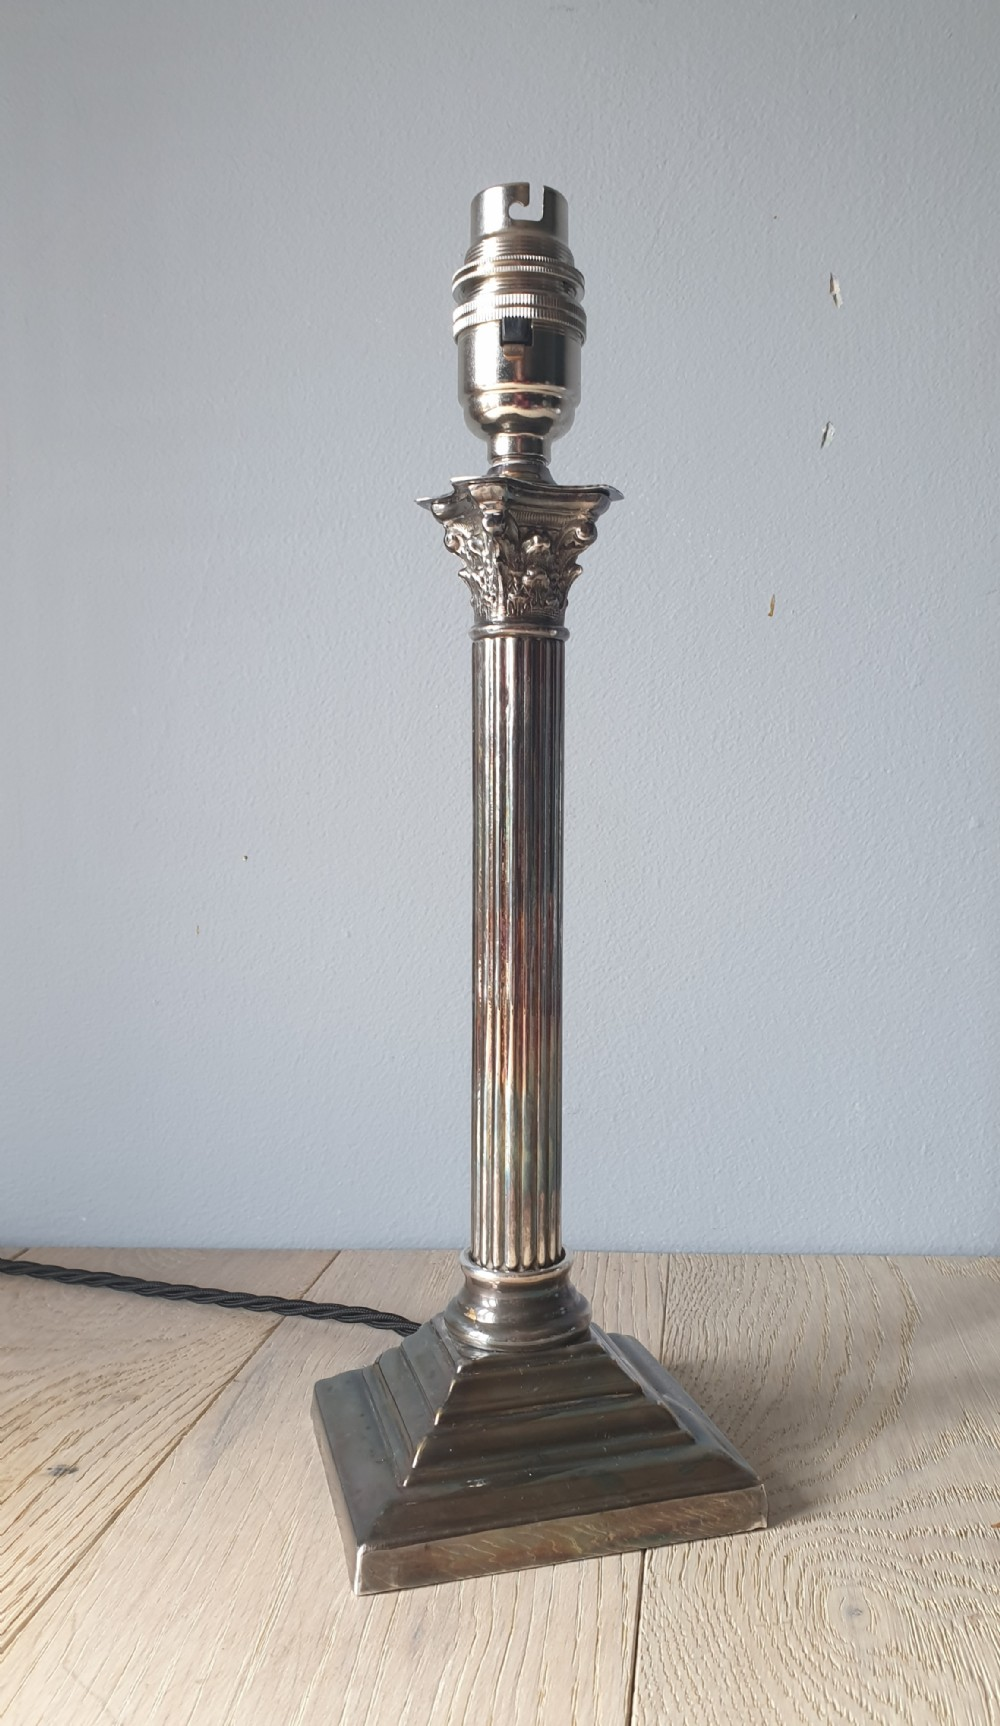 small nickel plated corinthian column table lamp rewired and pat tested